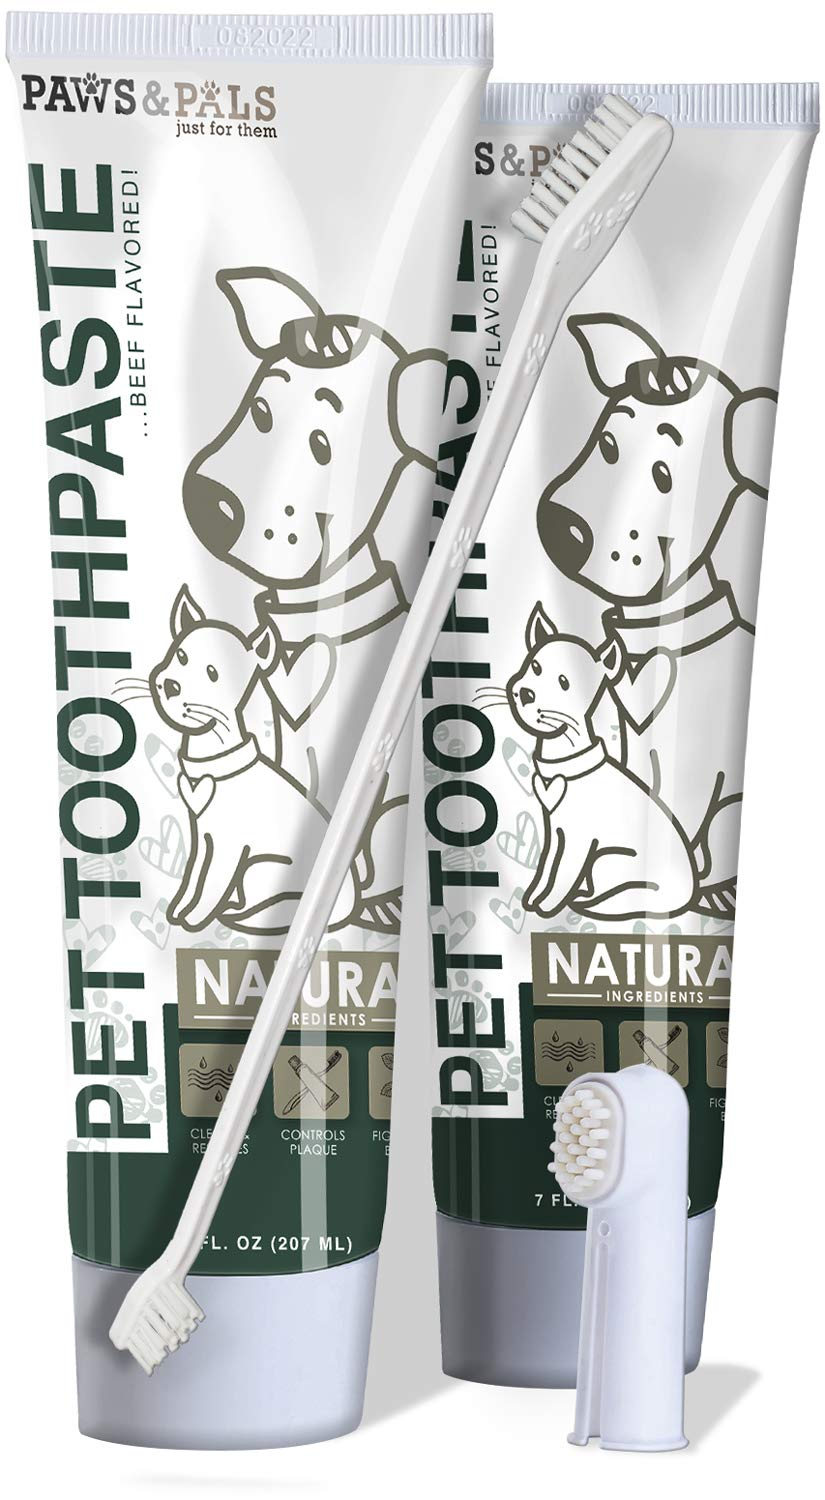 Paws & Pals 14 oz. Pet Dog Cat Enzymatic Toothpaste Dental Care Kit with Dual Toothbrush for Oral Hygiene - Fights Plaque Freshens Breath - Cleans and Restores - Pack of 2 - Beef Flavor